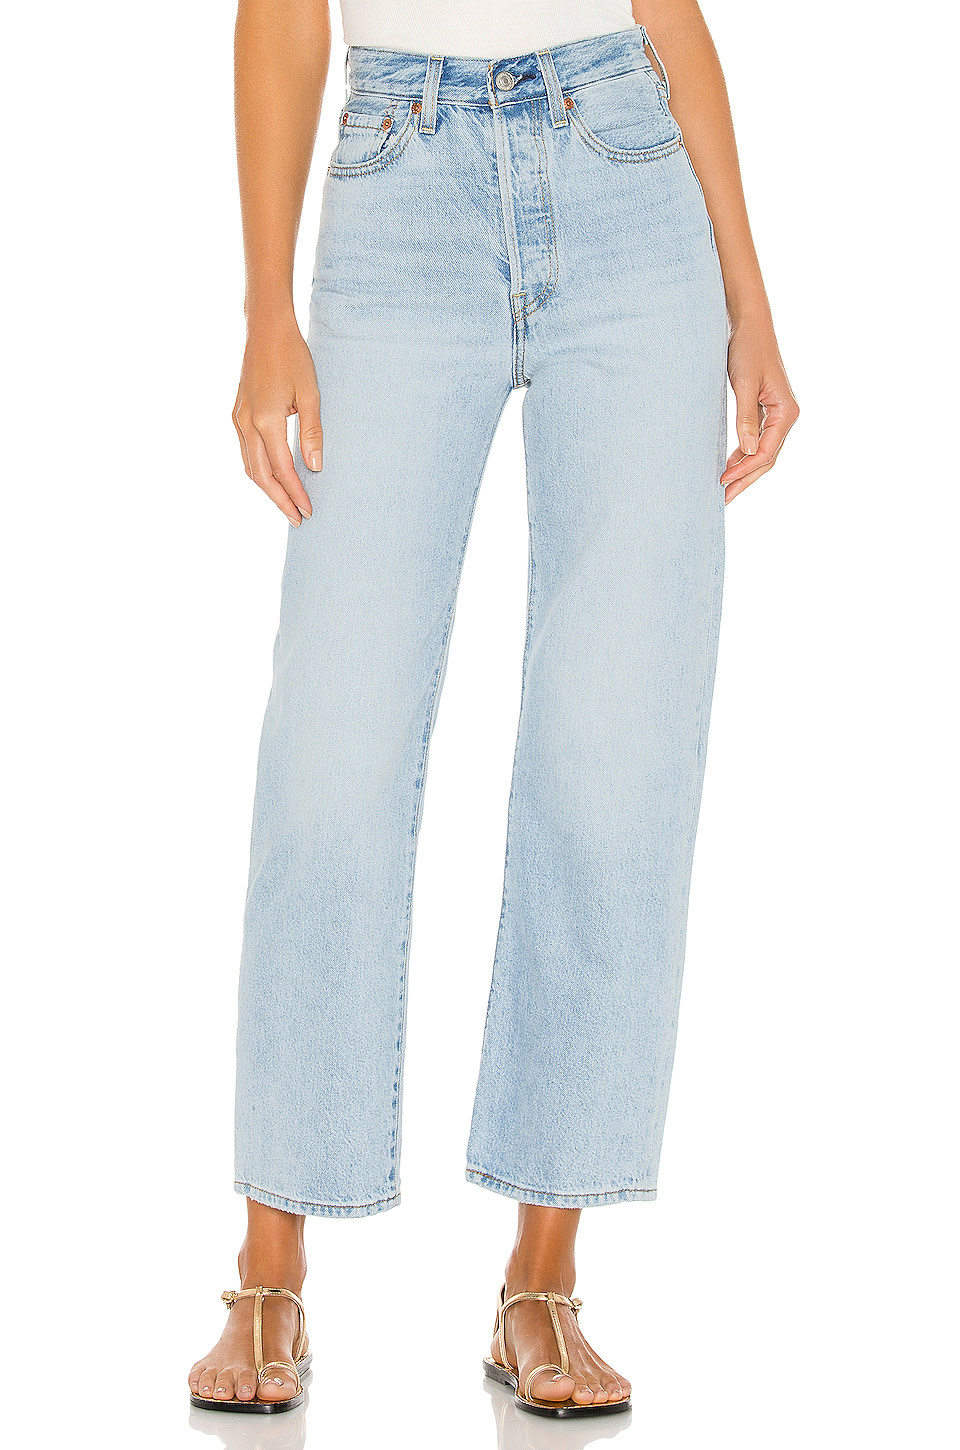 LEVI'S RIBCAGE STRAIGHT ANKLE 72693-0055 MIDDLE ROAD-2